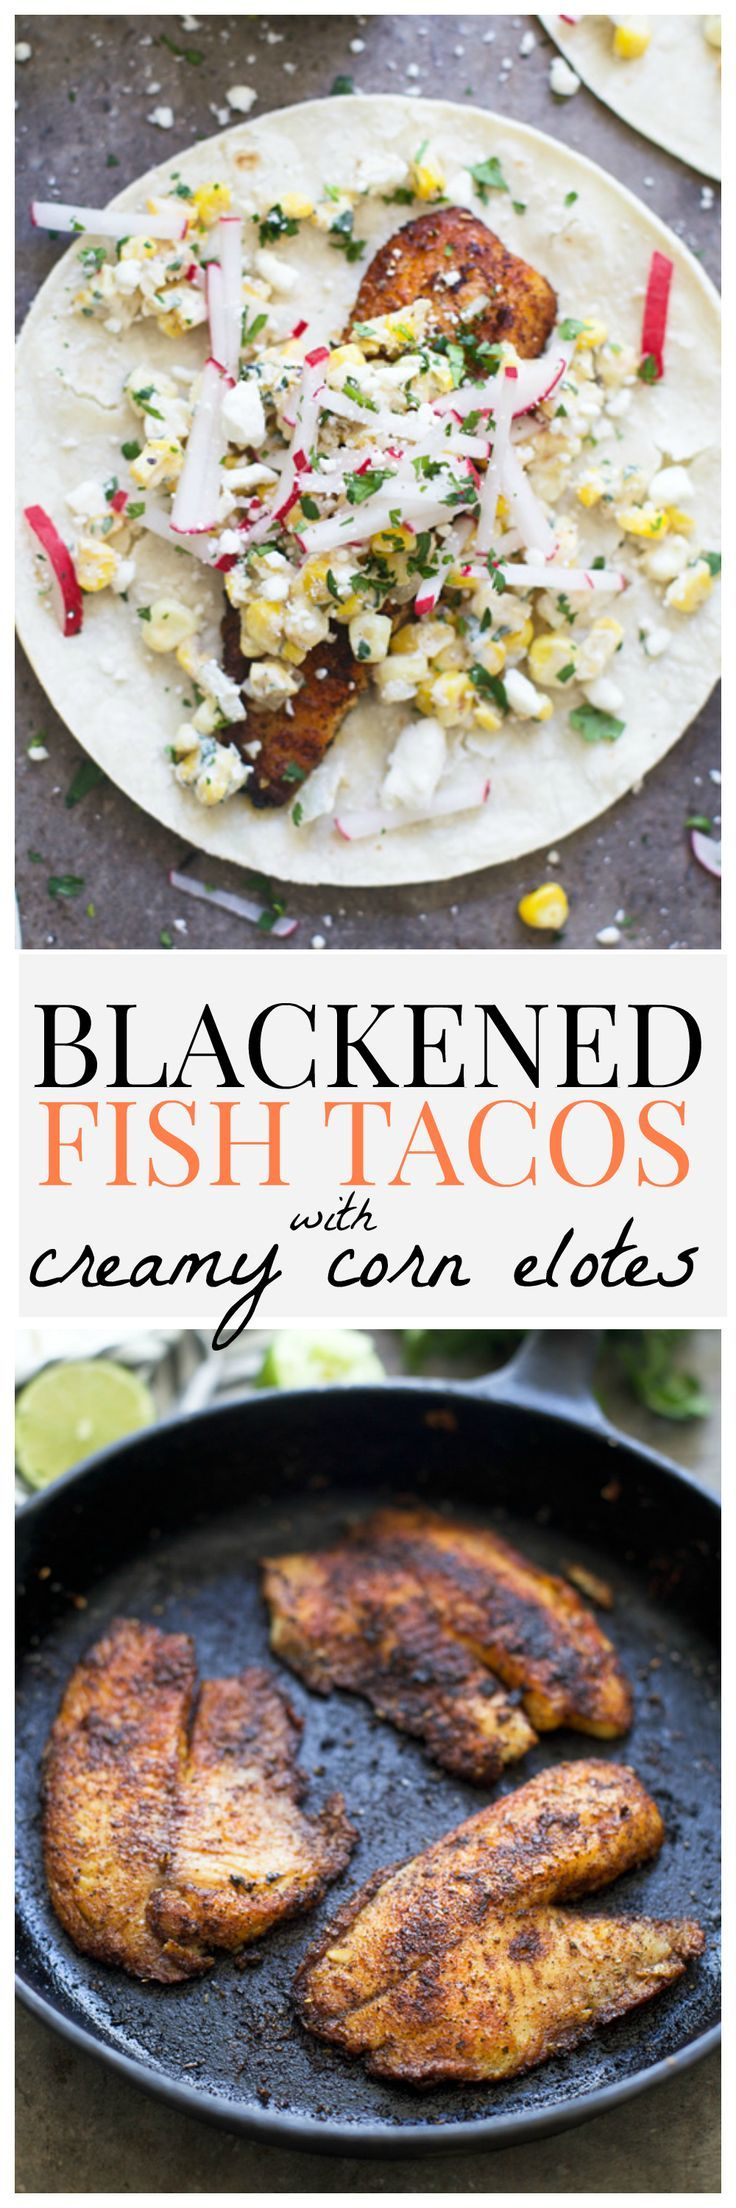 Blackened Fish tacos with Creamy Corn Elotes (Mexican Street Corn) - Easy and healthy!